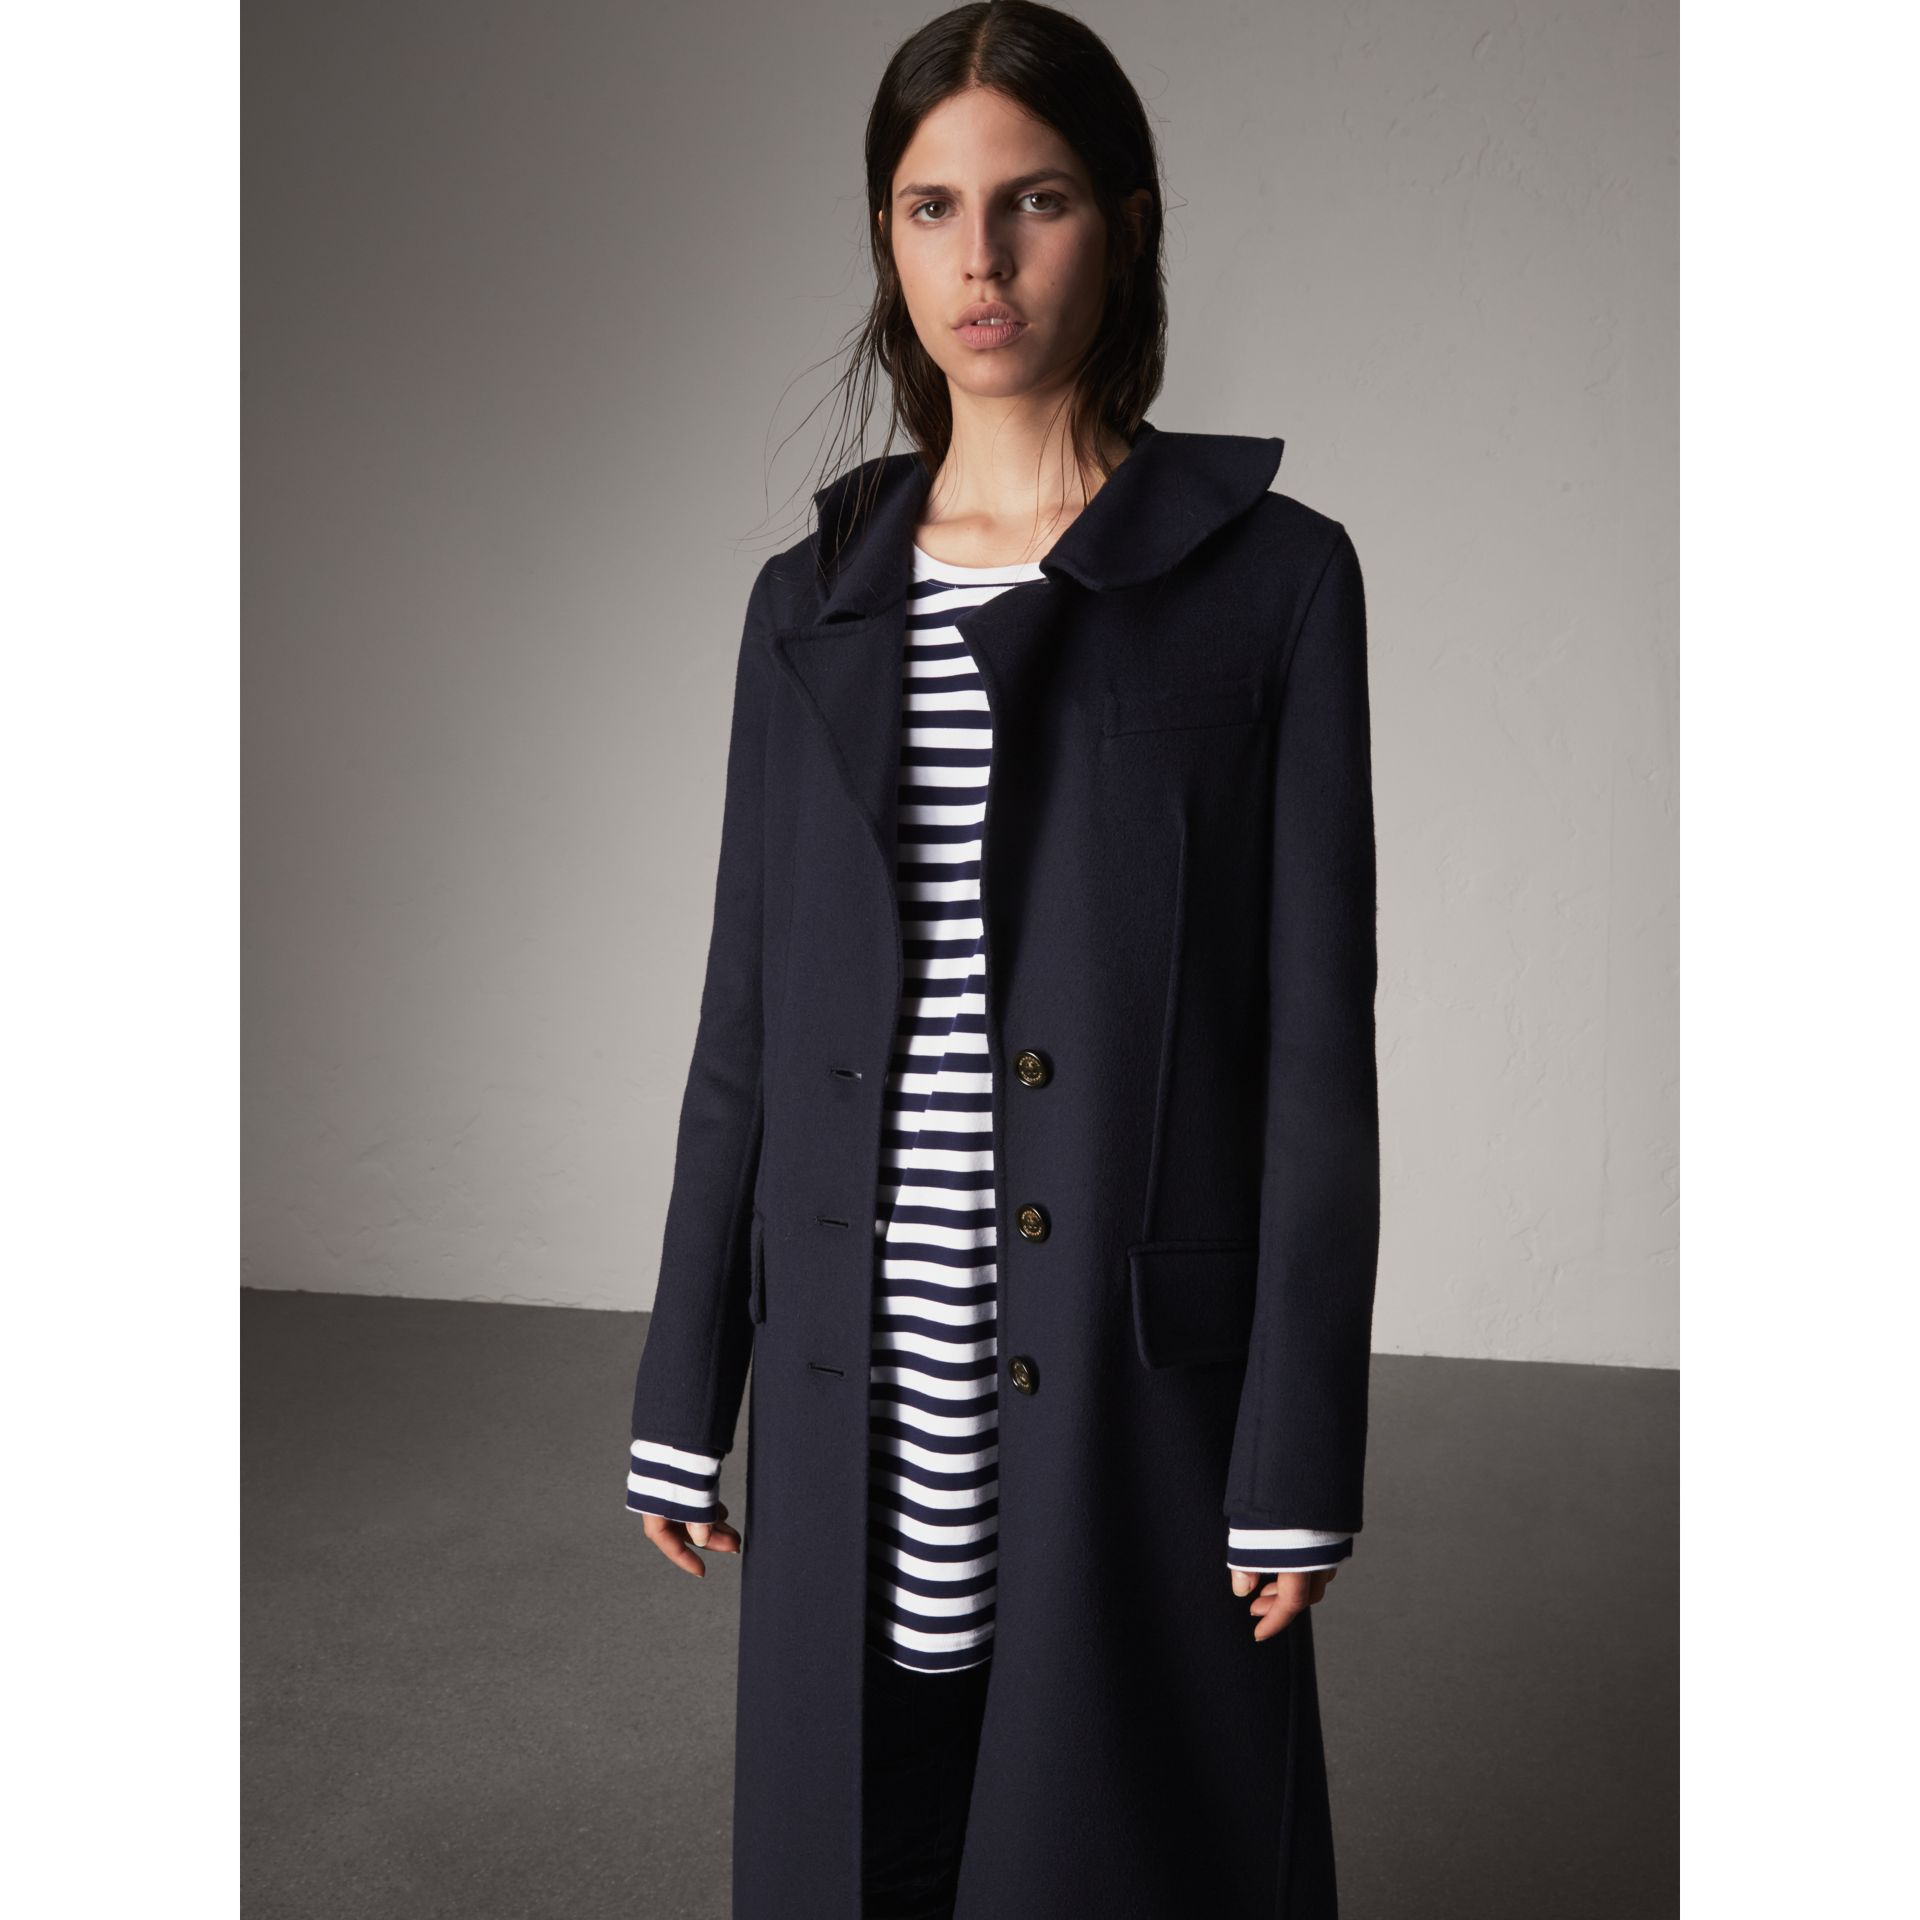 Ruffled Collar Wool Cashmere Coat in Navy - Women | Burberry - gallery image 6